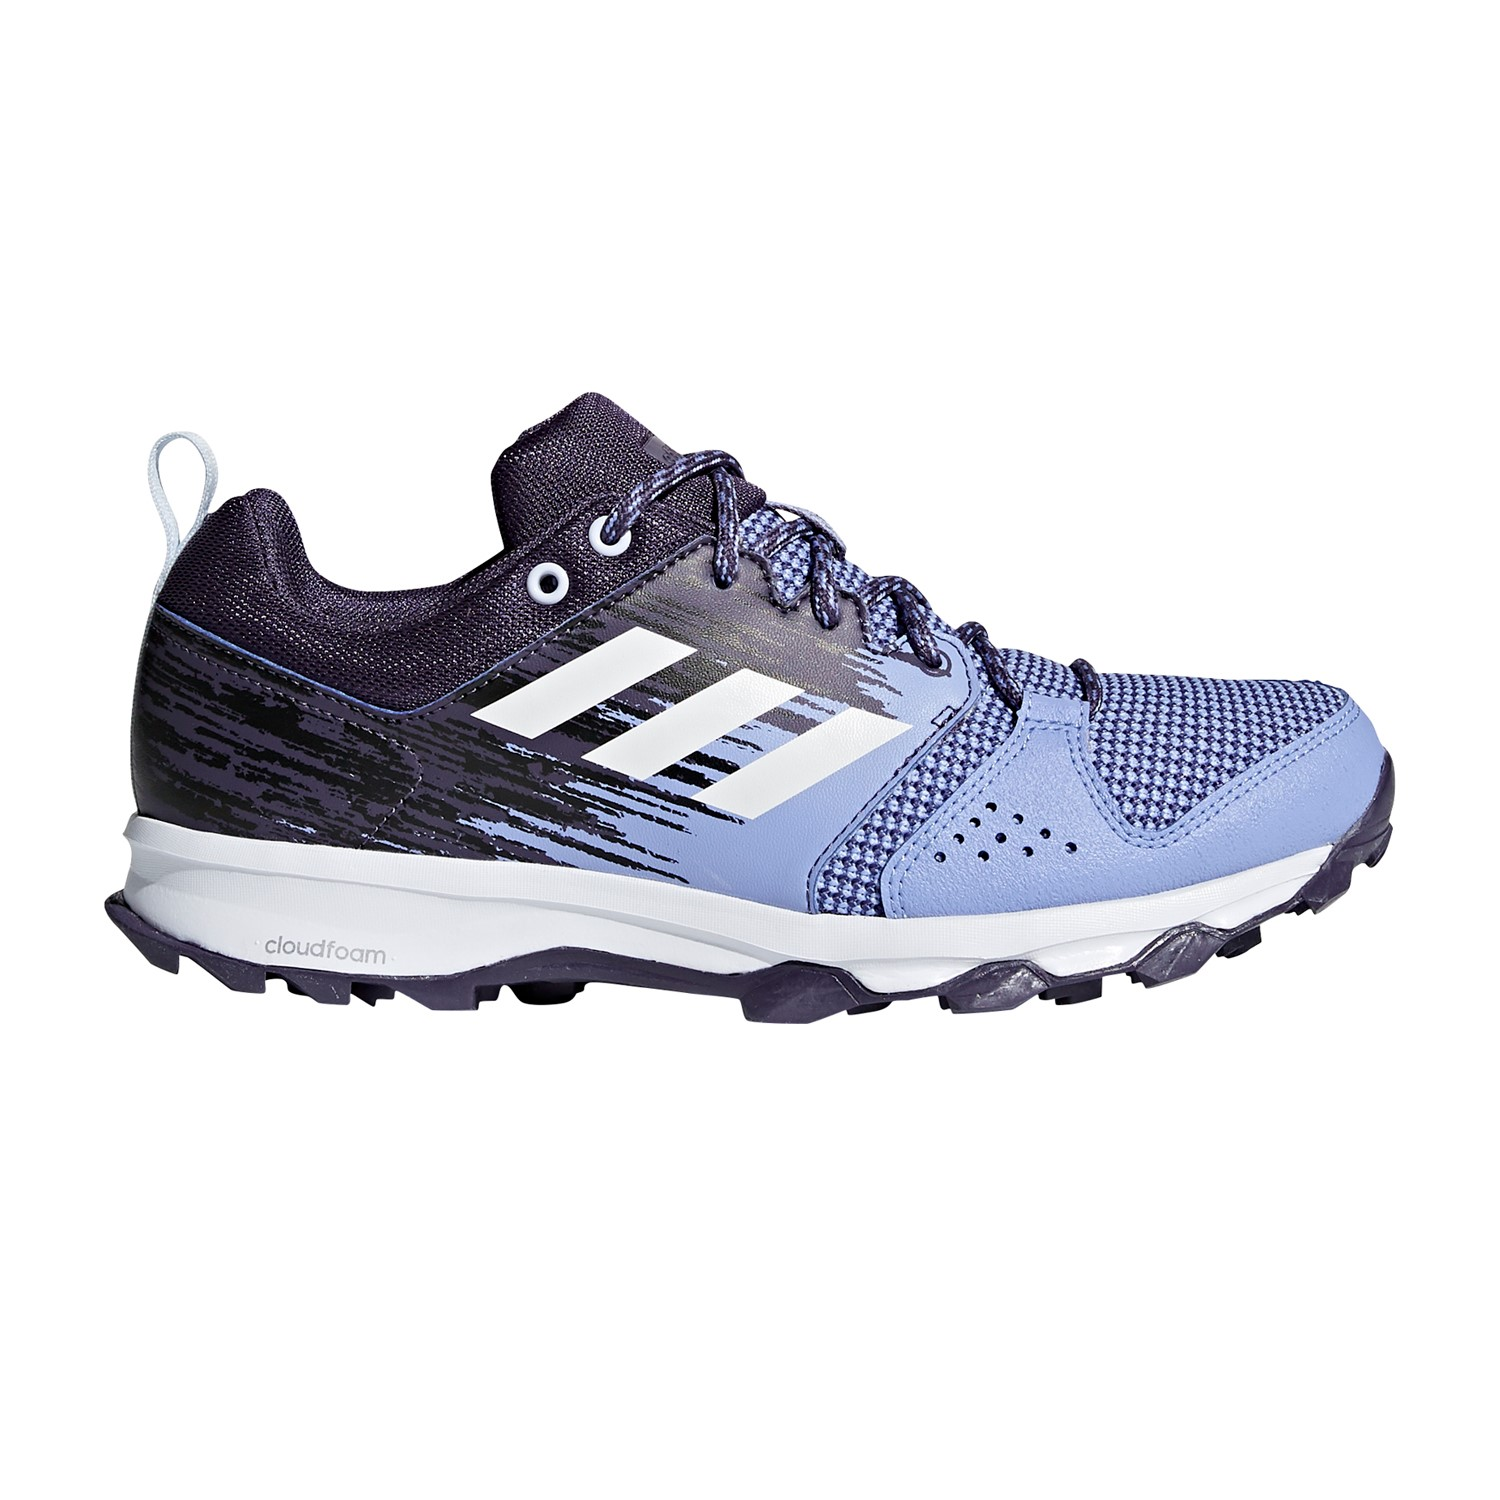 78f2d3e9564 Adidas Galaxy Trail - Womens Trail Running Shoes - Chalk Purple Orchard  Tint Trace